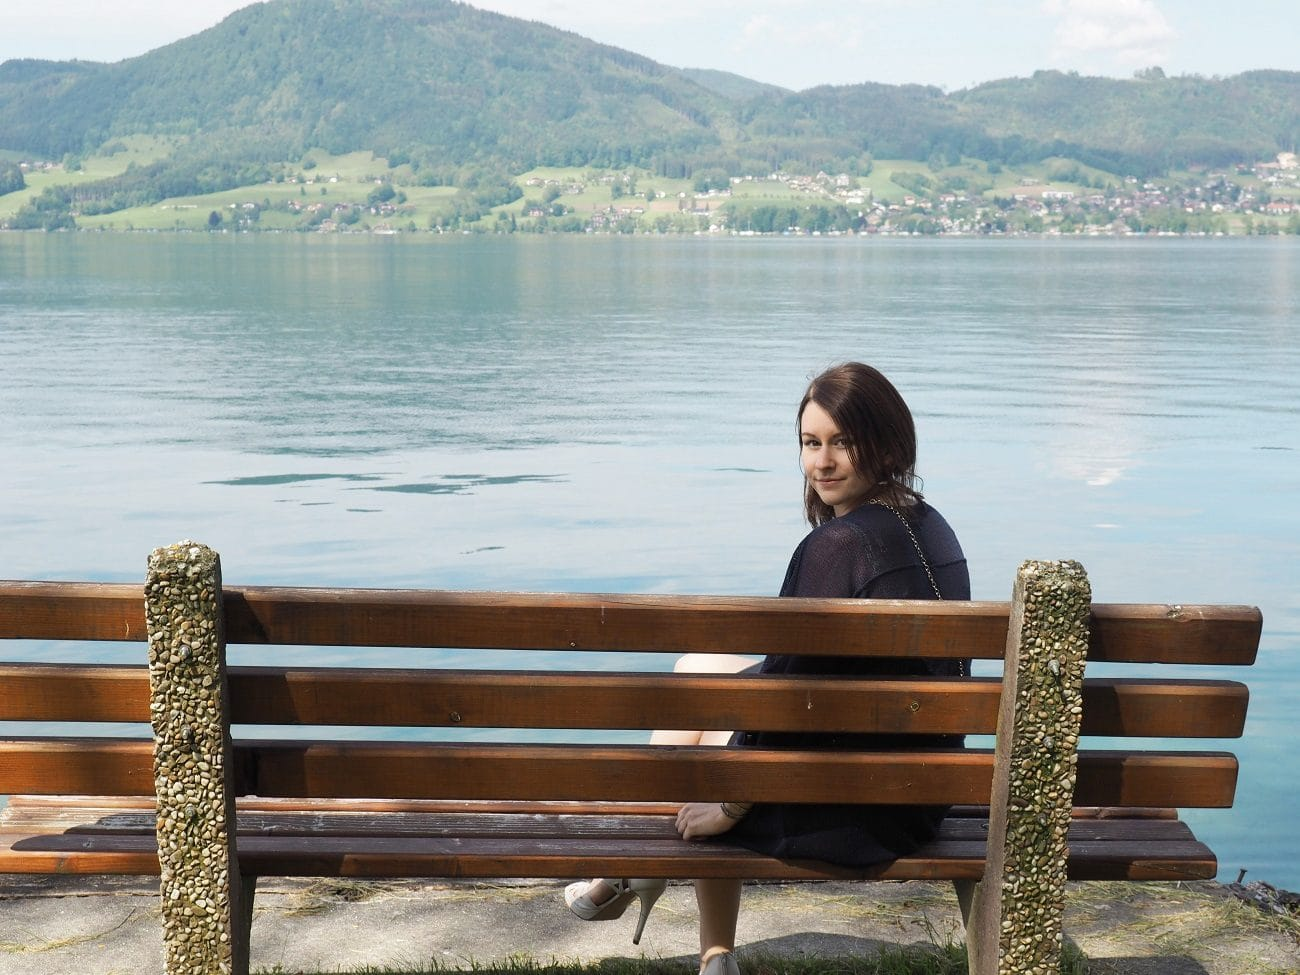 Where I come from – Attersee